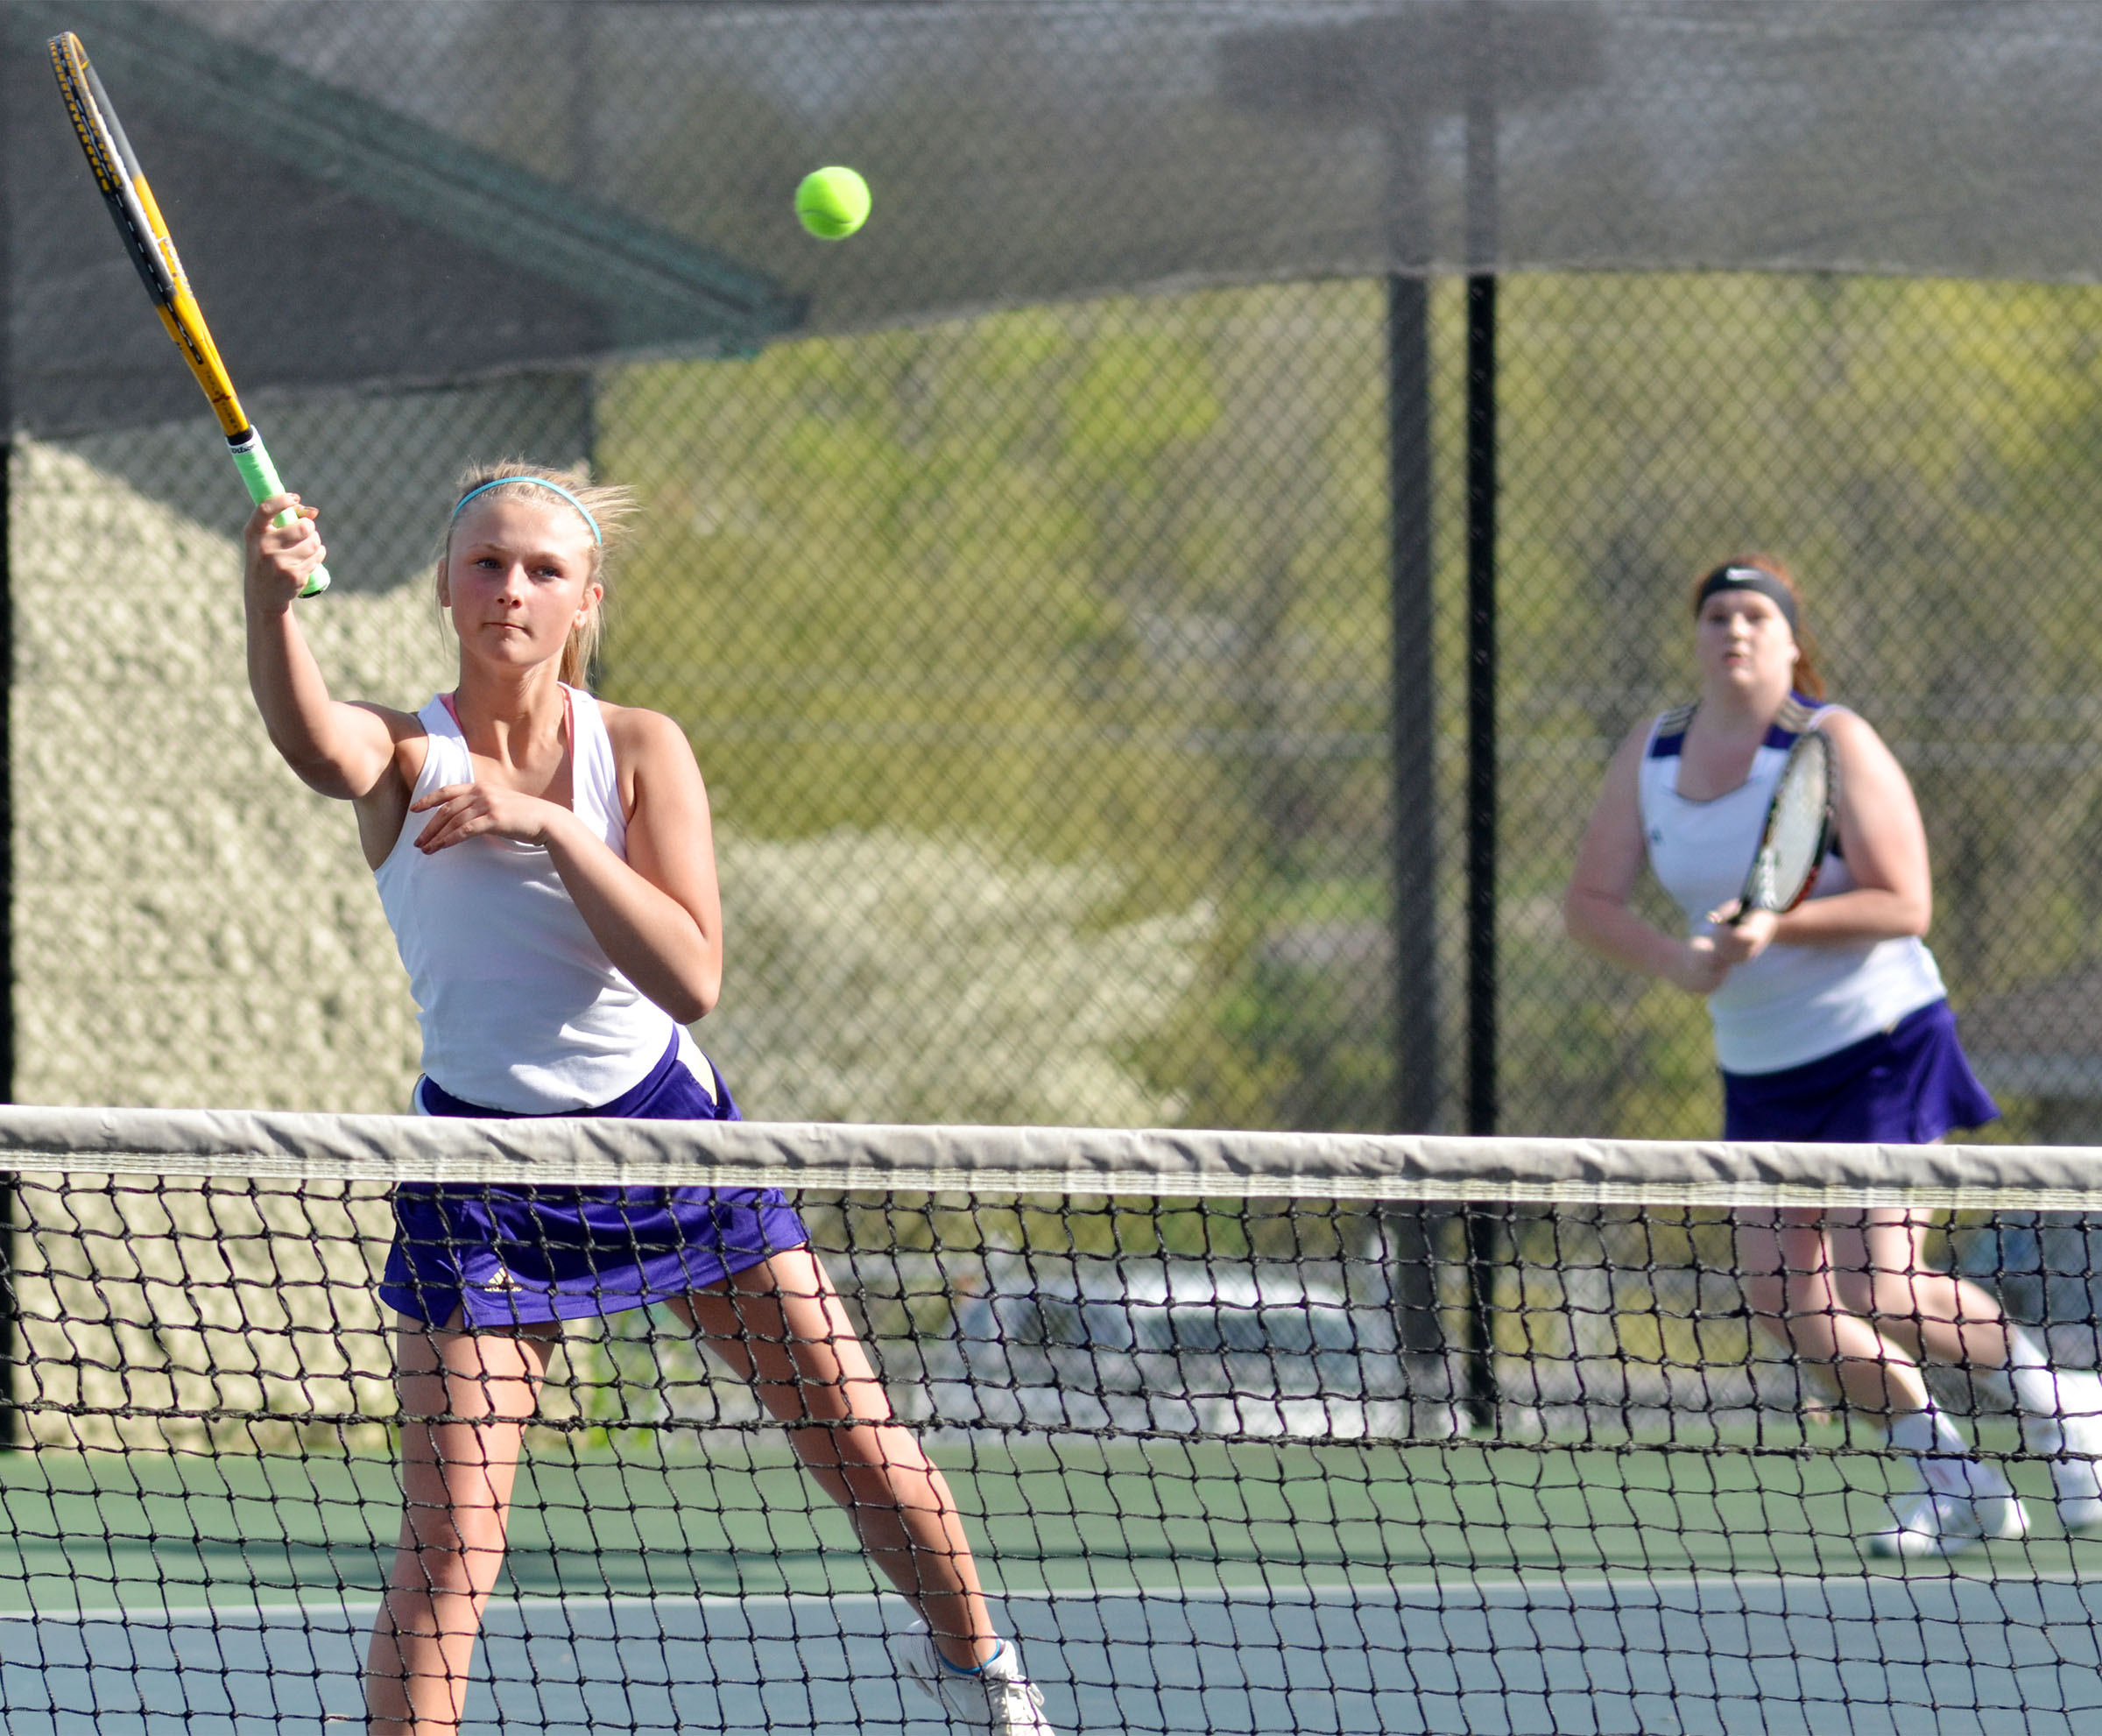 CHS freshman Victoria Cox, at left, hits the ball as doubles partner Mallory Haley, a senior, looks on.